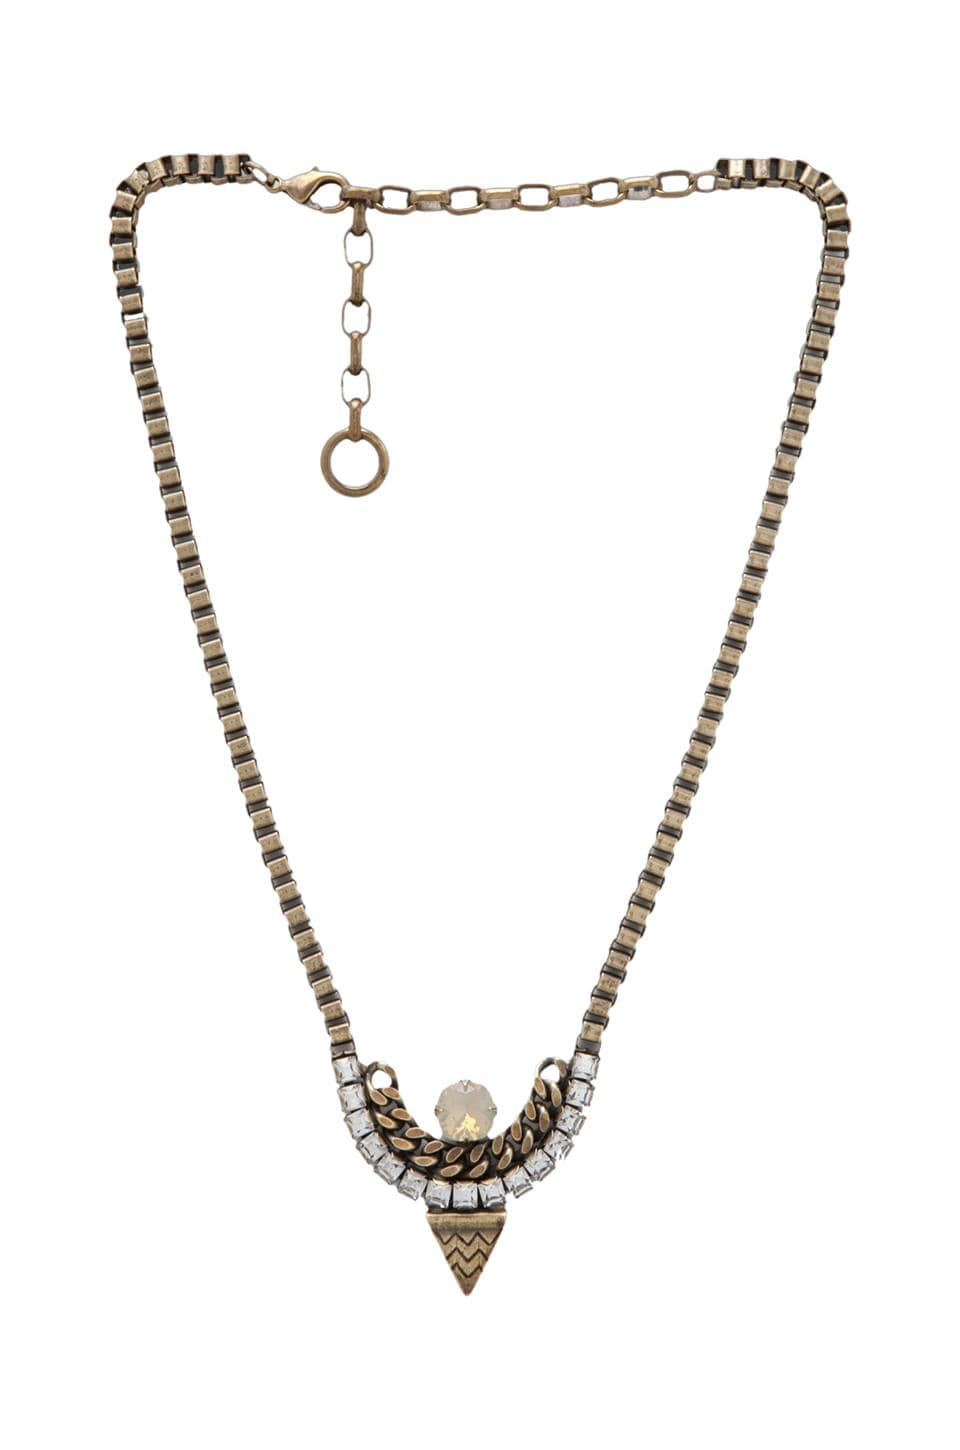 Lionette by Noa Sade Tribeca Necklace in Clear